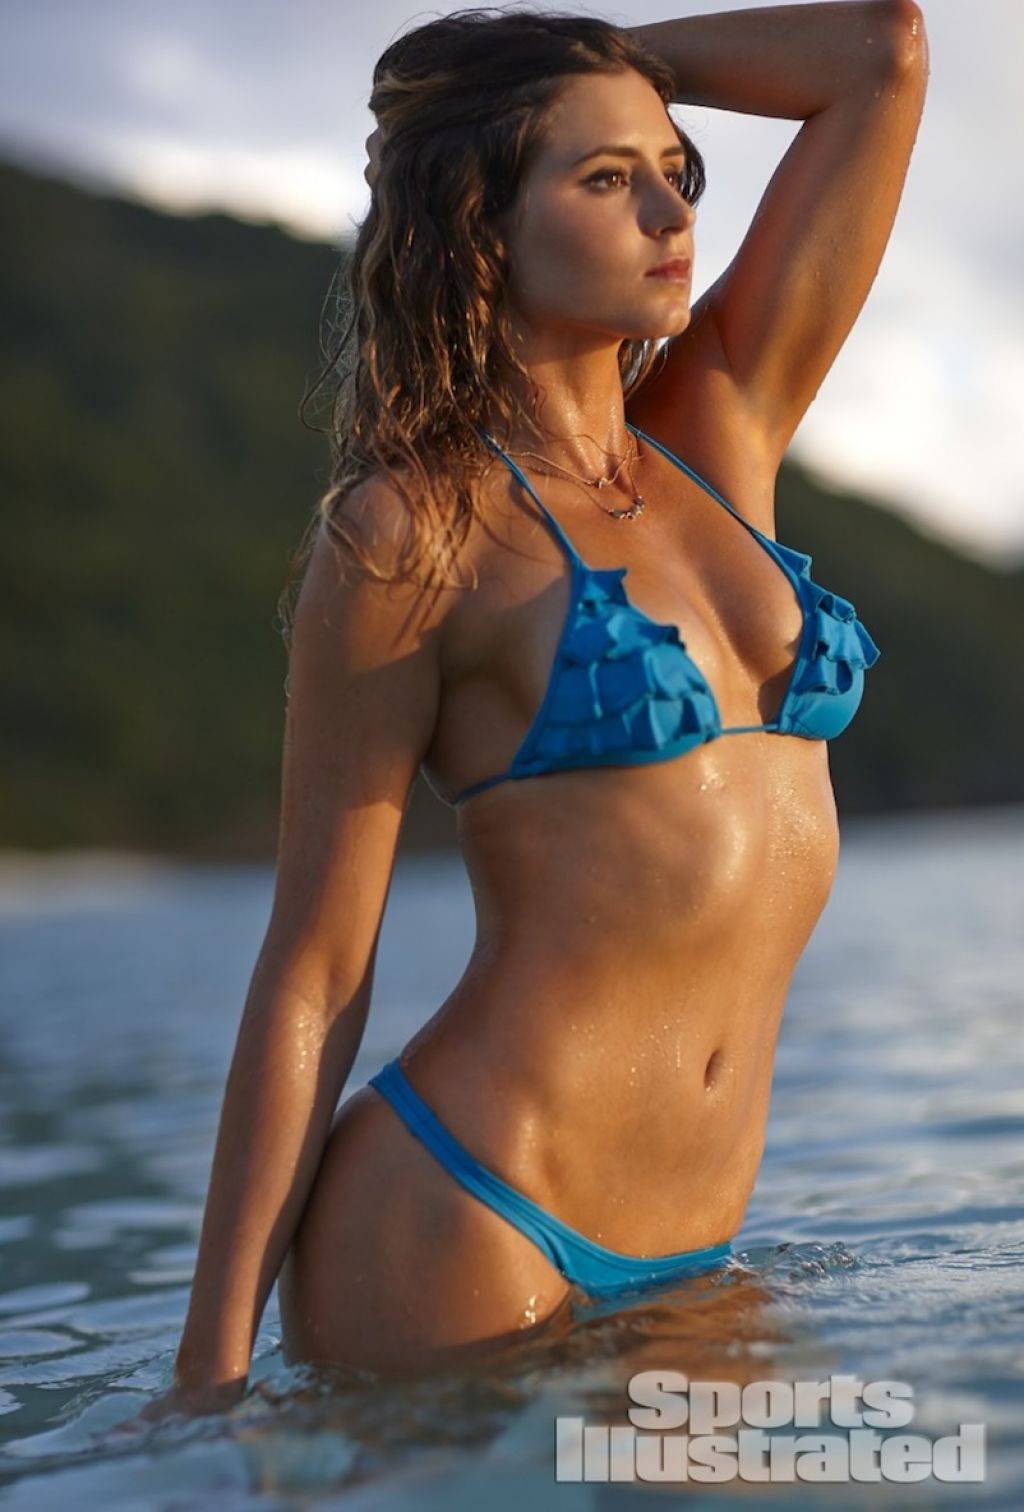 Anastasia Ashley - Hot in Bikini - Sports Illustrated 2014 Swimsuit Issue